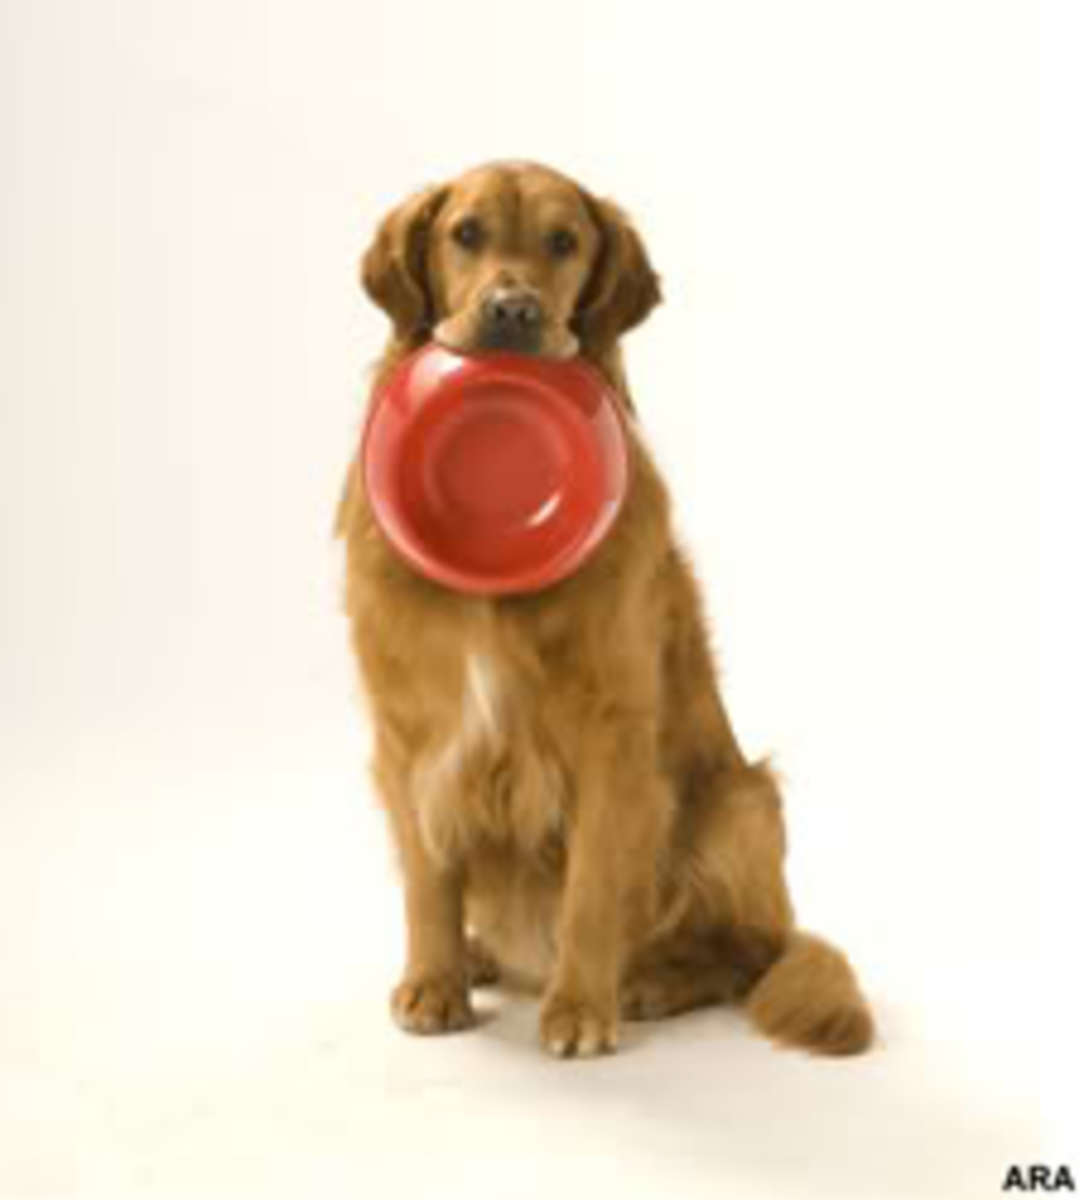 dogwithbowl1